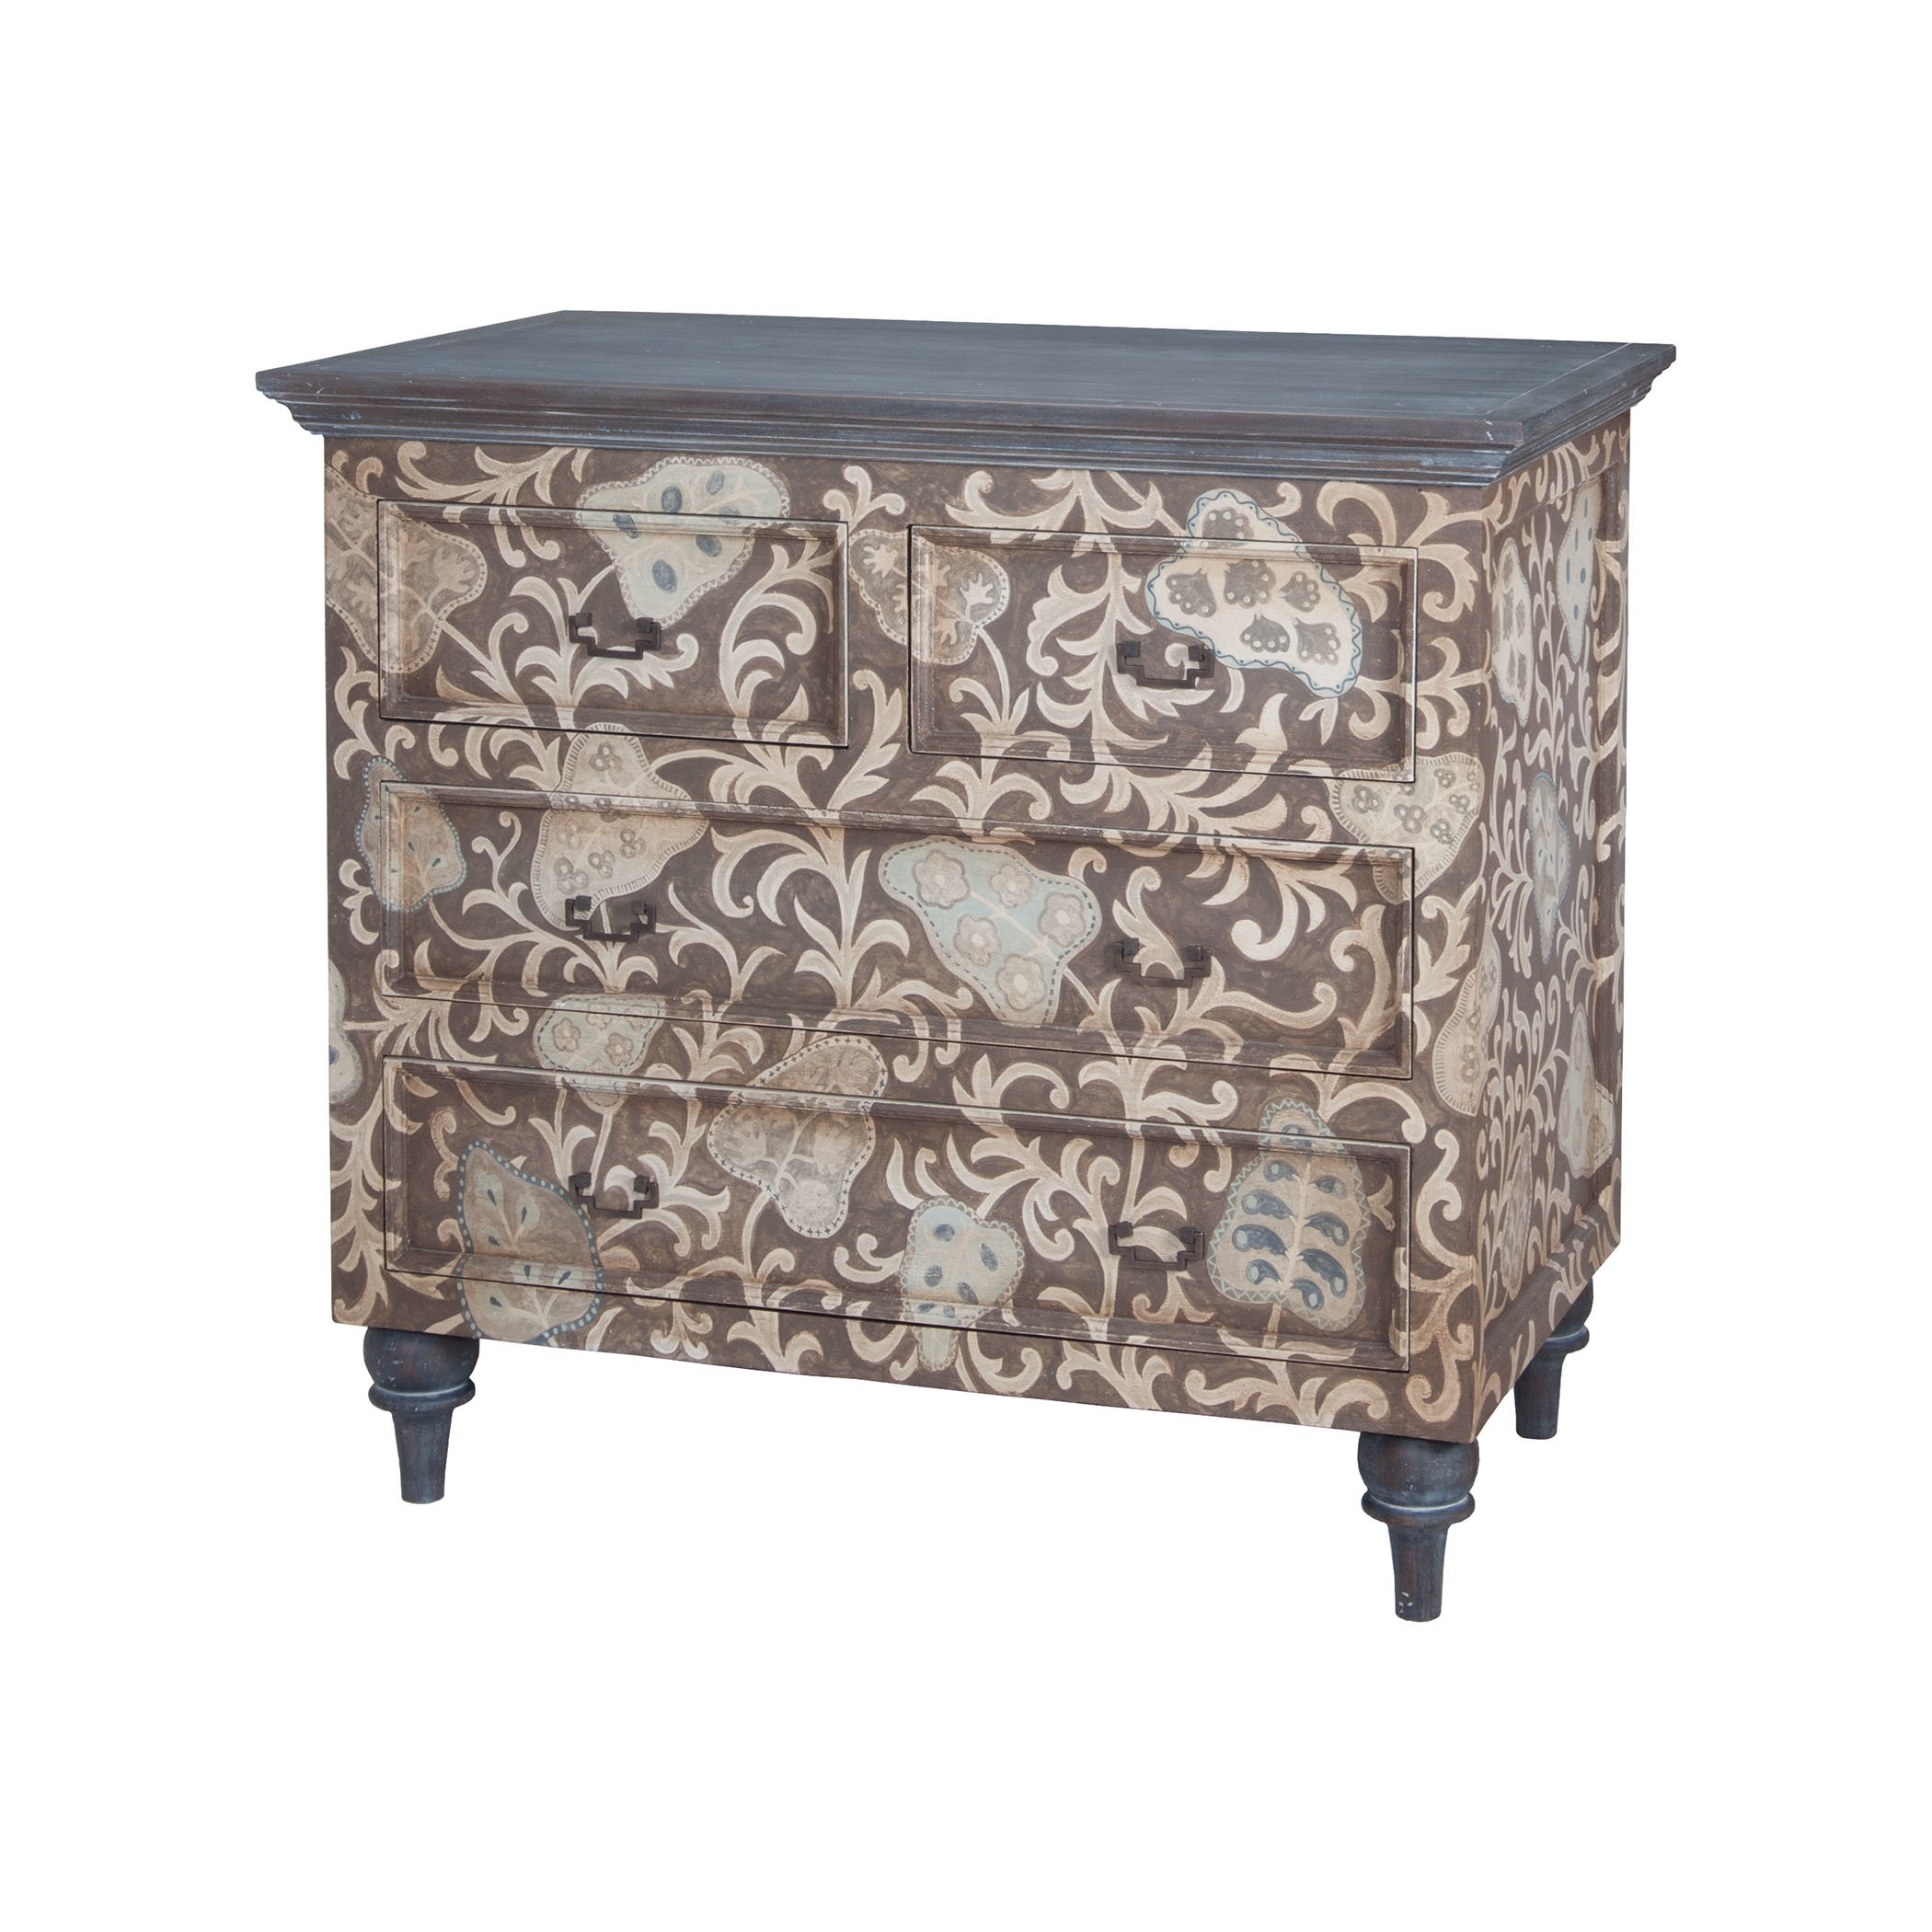 Bungalow Rose Giancarlo 4 Drawer Accent Chest | Wayfair Pertaining To Current Moraga Live Edge 8 Door Sideboards (View 7 of 20)